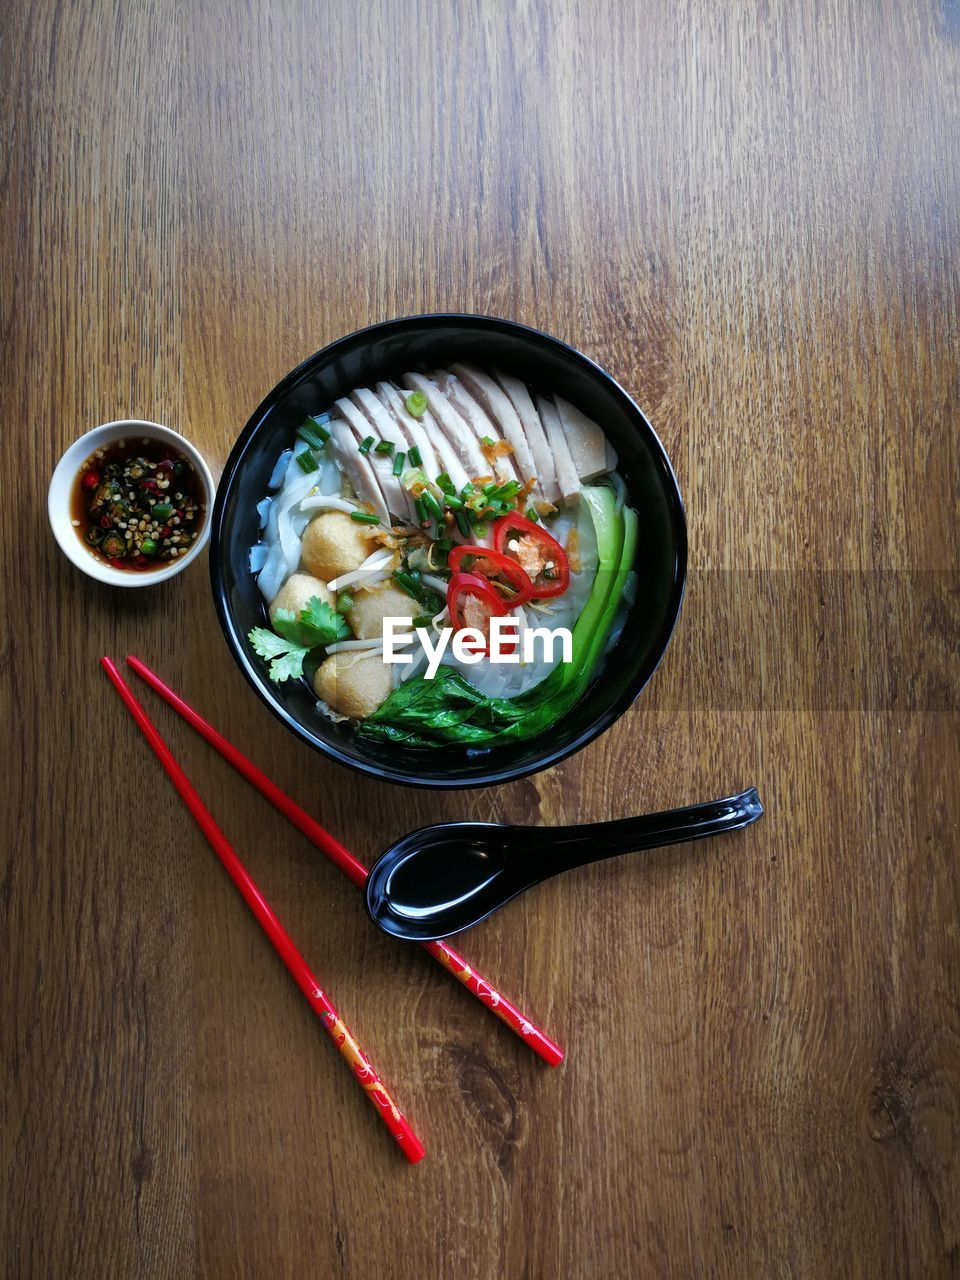 food and drink, food, chopsticks, bowl, vegetable, healthy eating, wellbeing, directly above, indoors, asian food, wood - material, no people, table, japanese food, high angle view, freshness, spice, close-up, soup, chili pepper